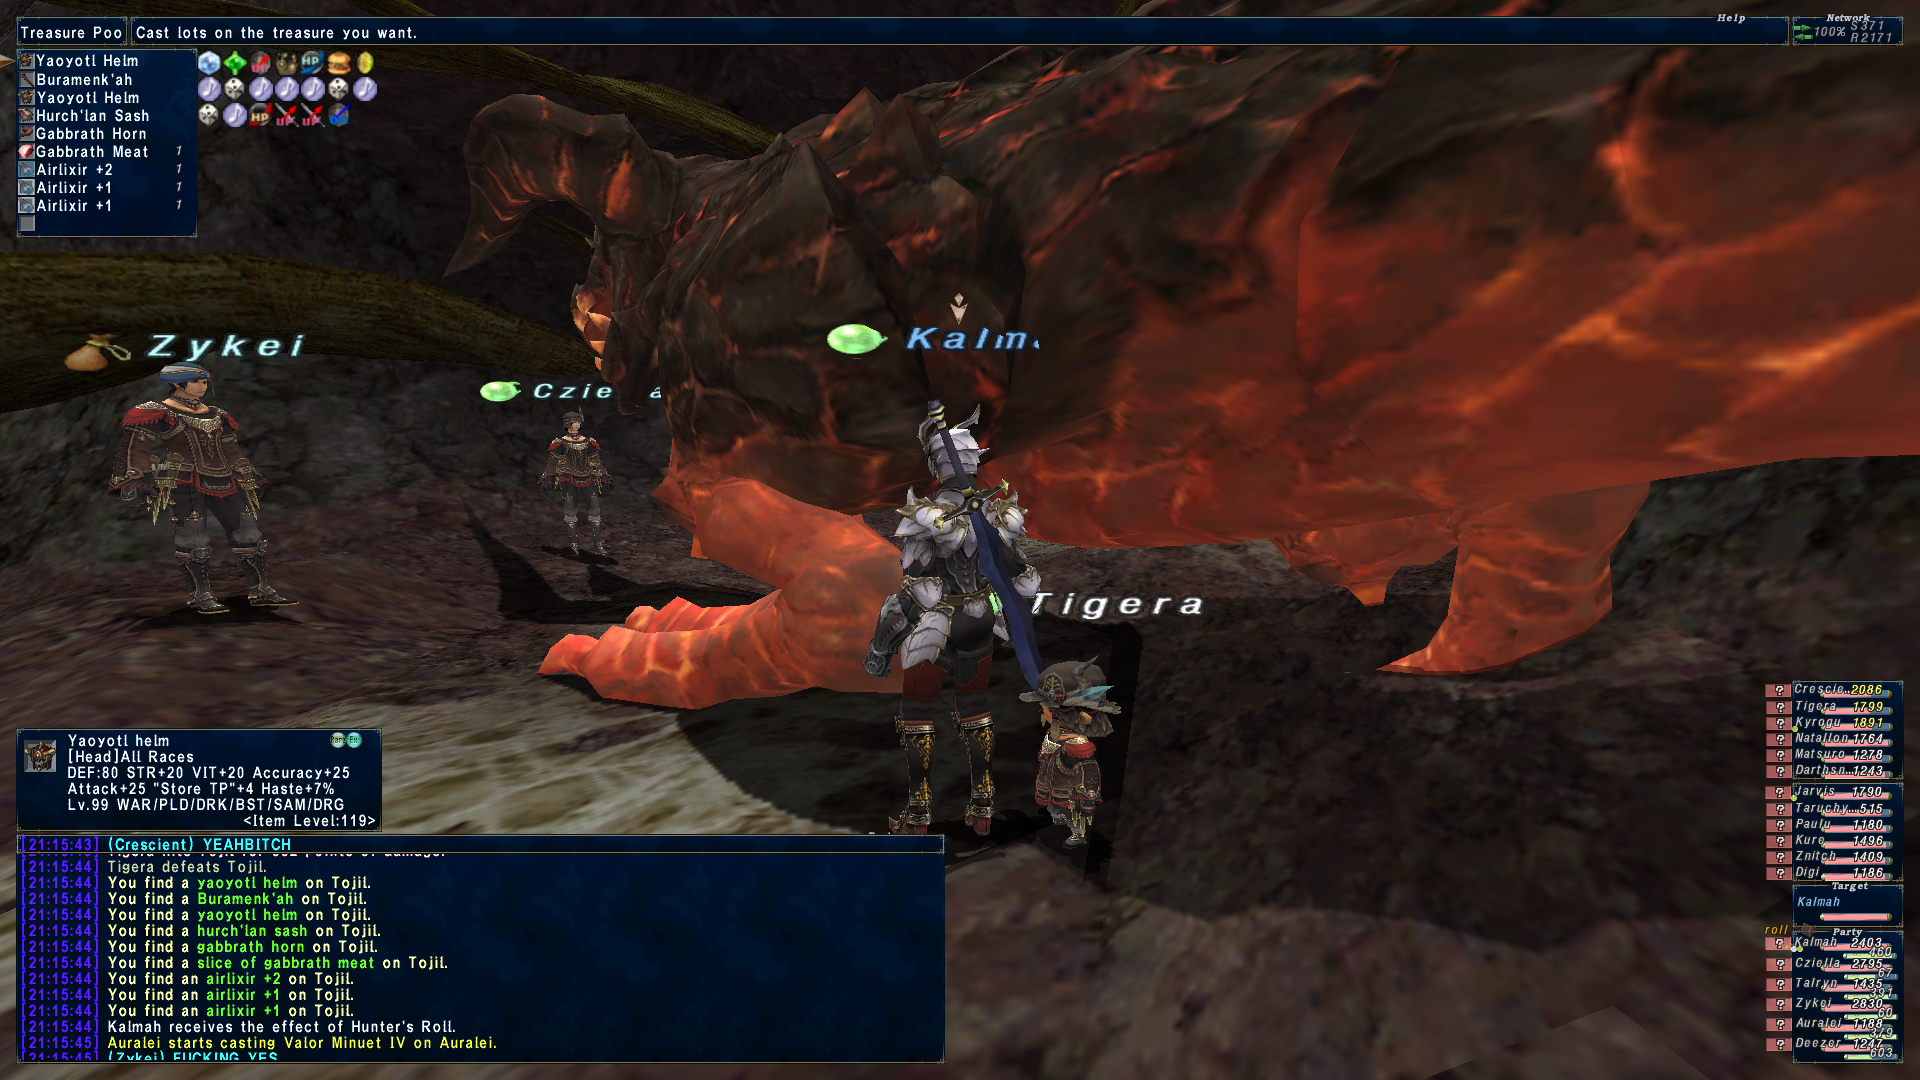 isindil ffxi nin with prolly this have avoid setup chapuli that scorp mnks arent problem tops convenantly fight butterflies taxet their formless makes which slashing blunt mastop piercing alternate should dont angoni work point stuns assumign debuffs war compared alot looses attack brds from buffs while drknin everything else dick fucking given